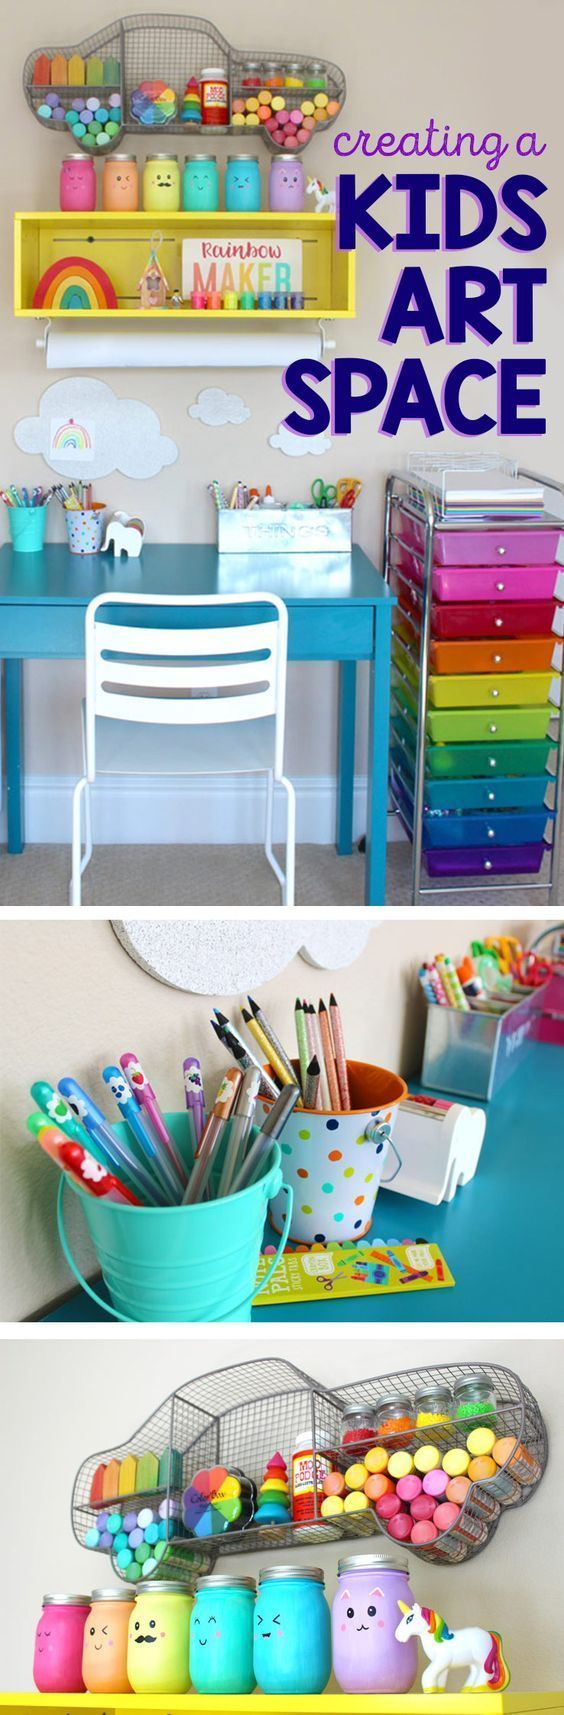 Creating a kids art space- tips ideas!Love this craft cart